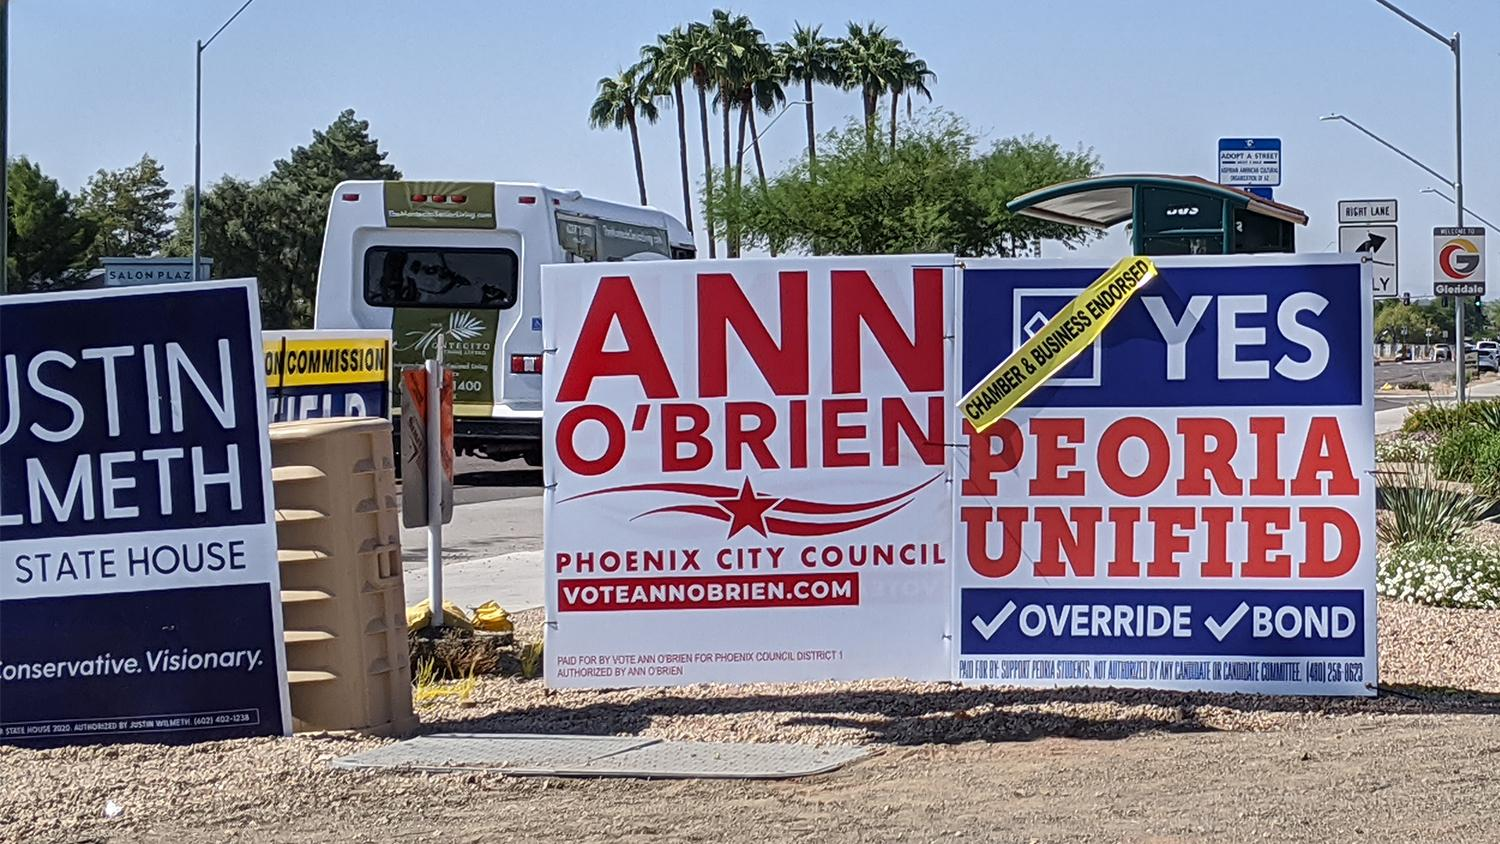 A sign for a Peoria Unified School District bond and override